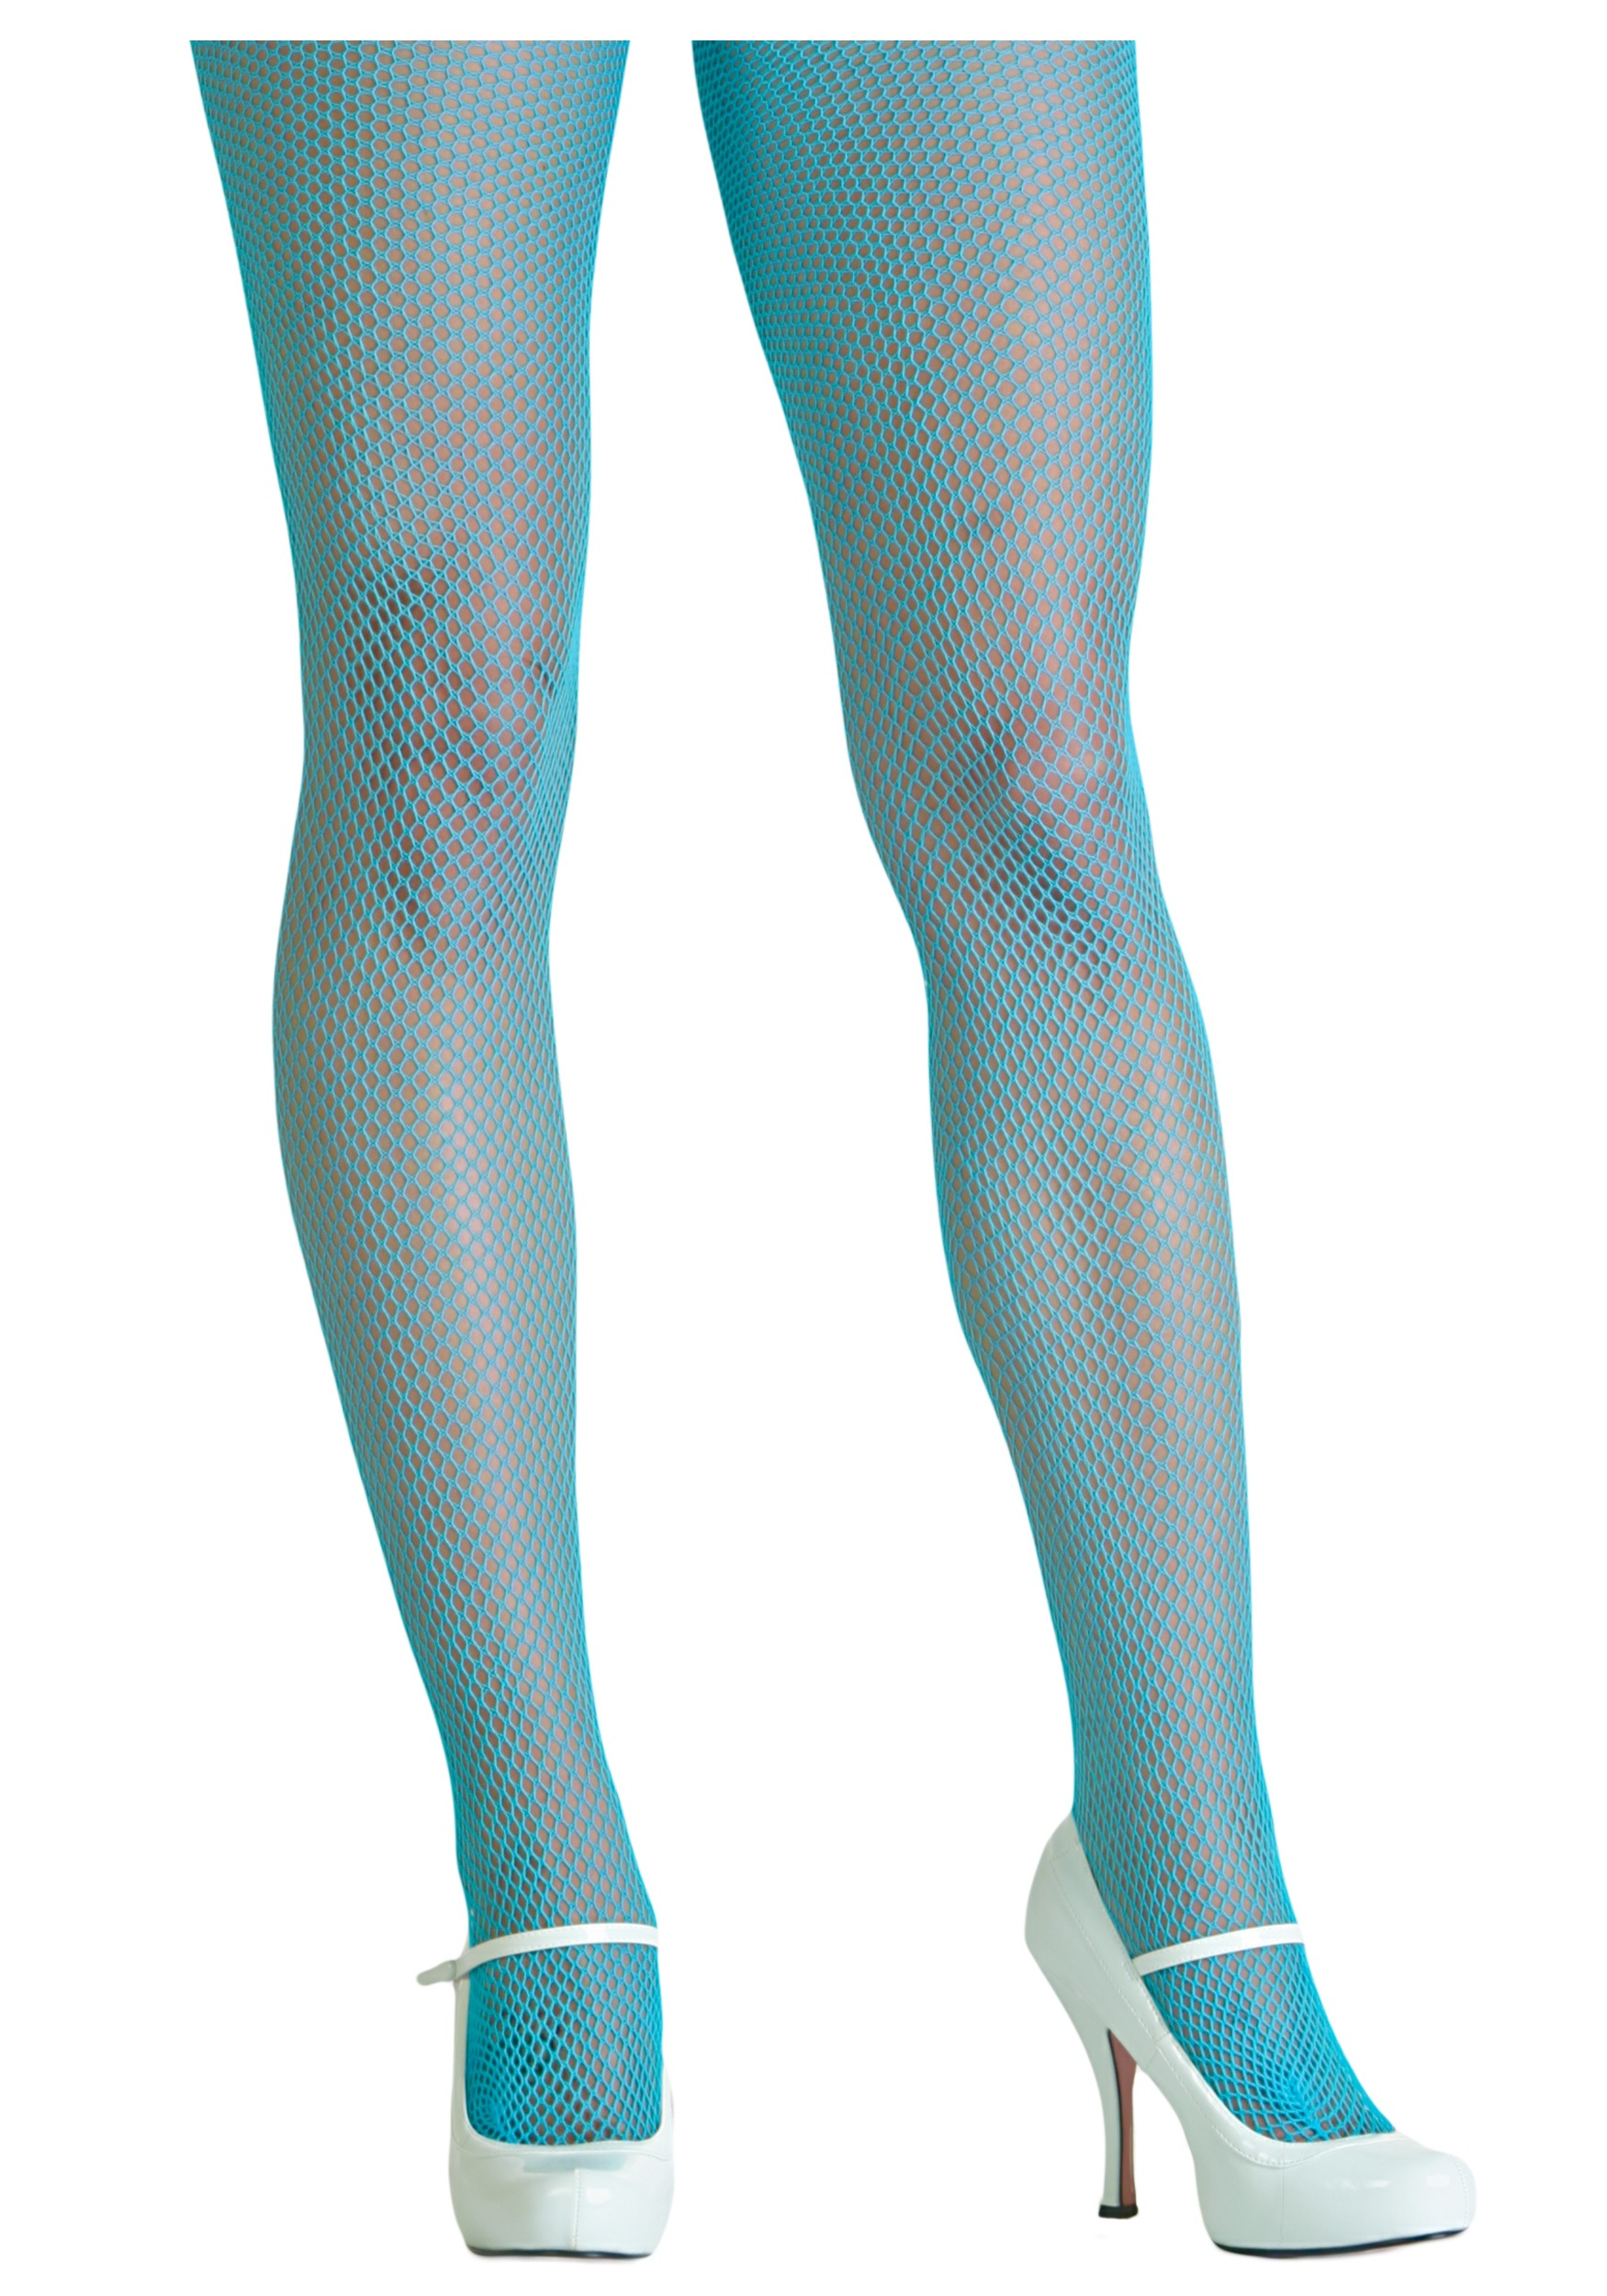 Blue fishnet pantyhose